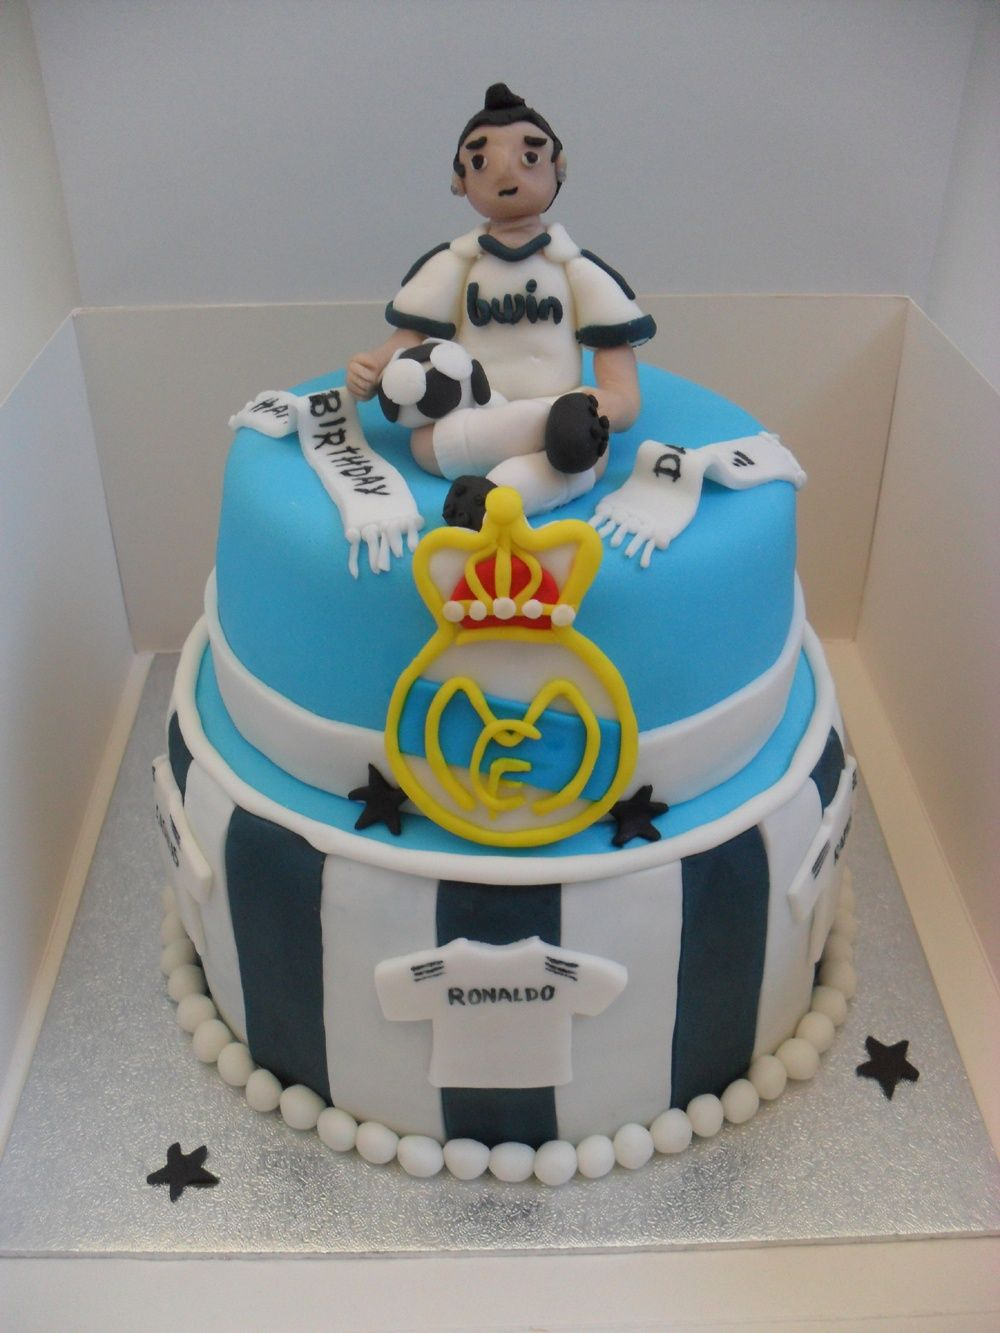 Real Madrid Cake Cakes  Cupcakes Pinterest Real Madrid Cake - Real birthday cake images